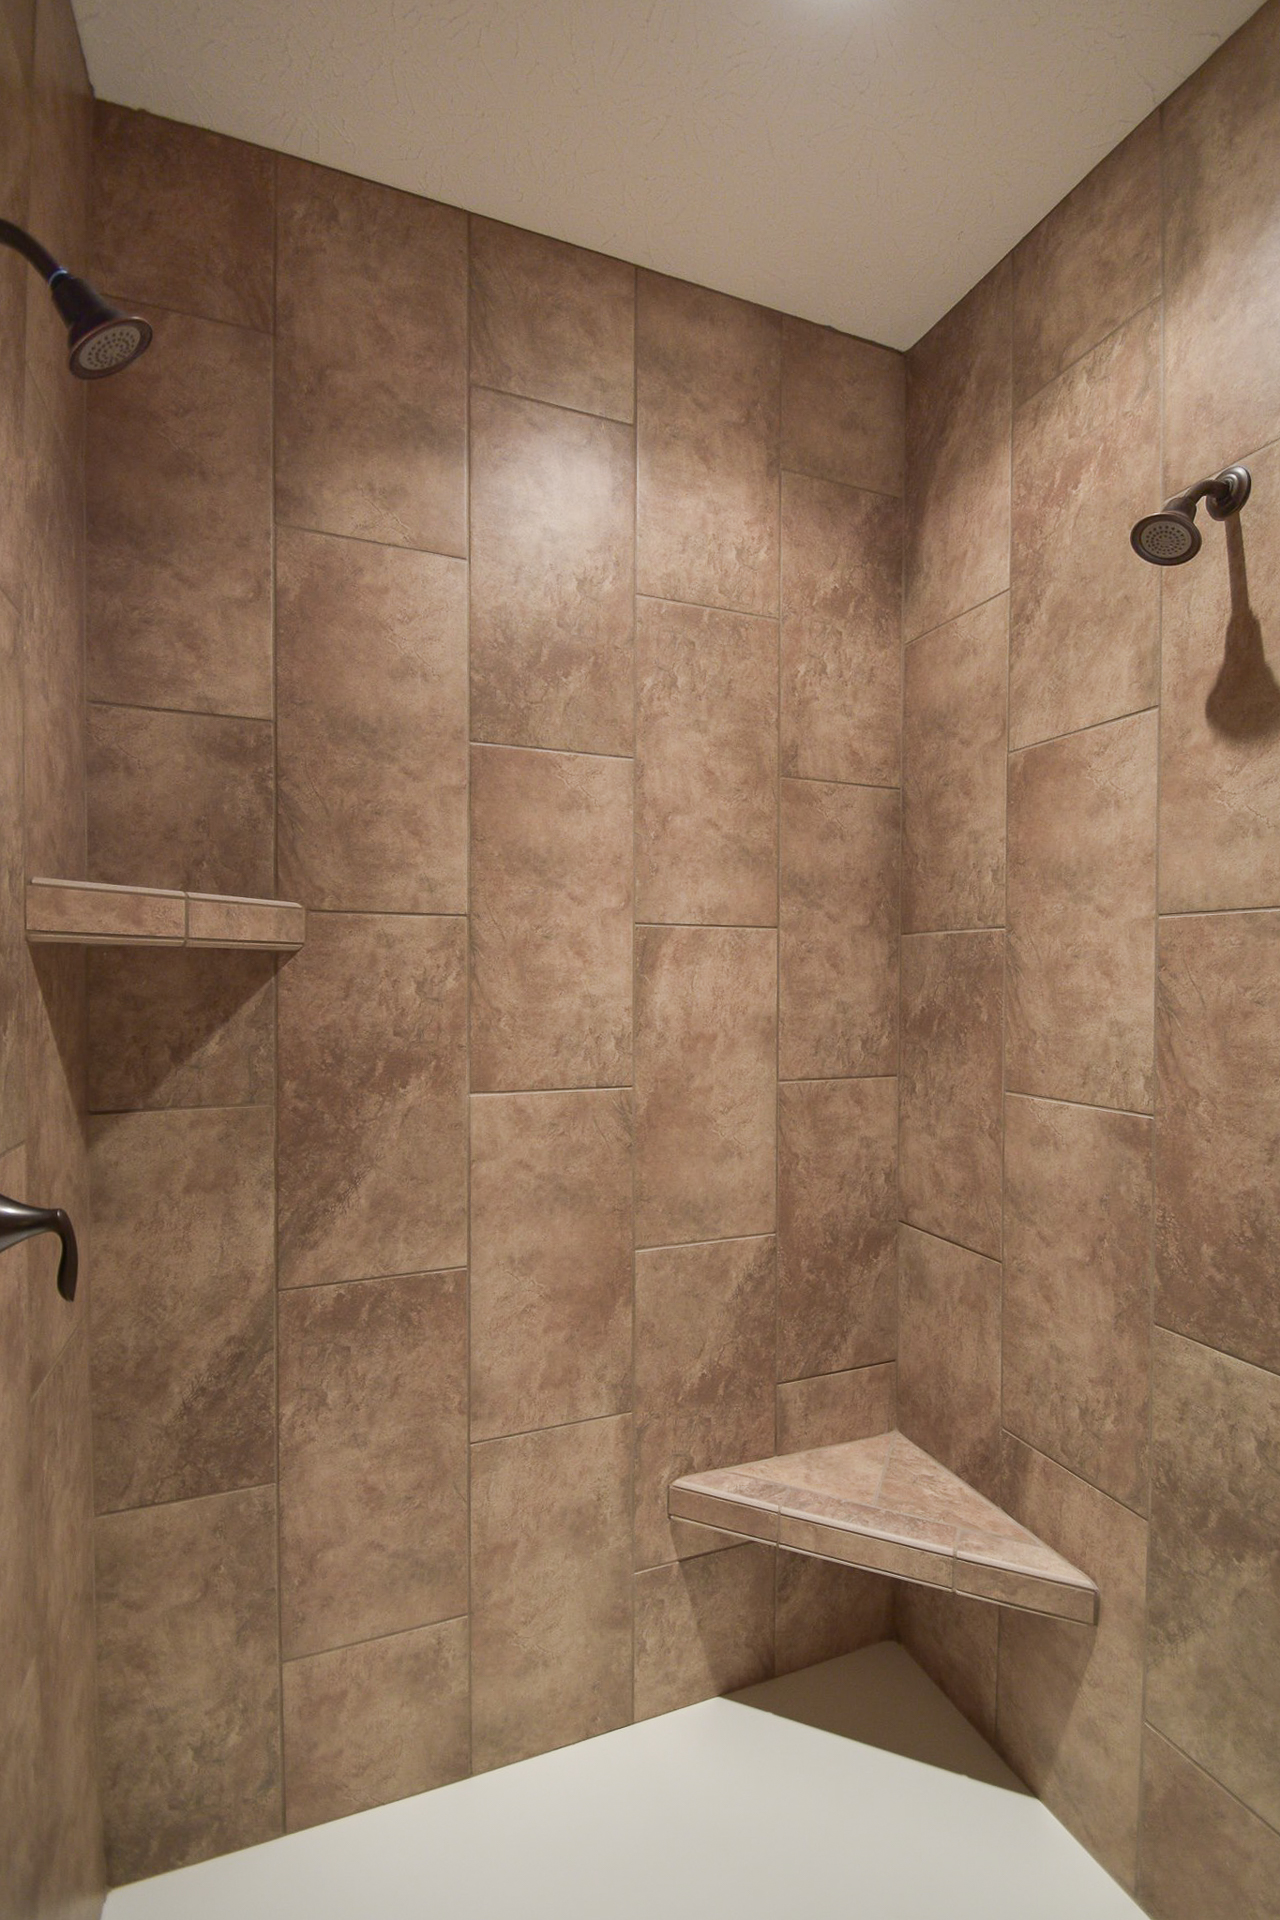 Ceramic tile shower with shelf and seat with dual Eva ORB fixtures